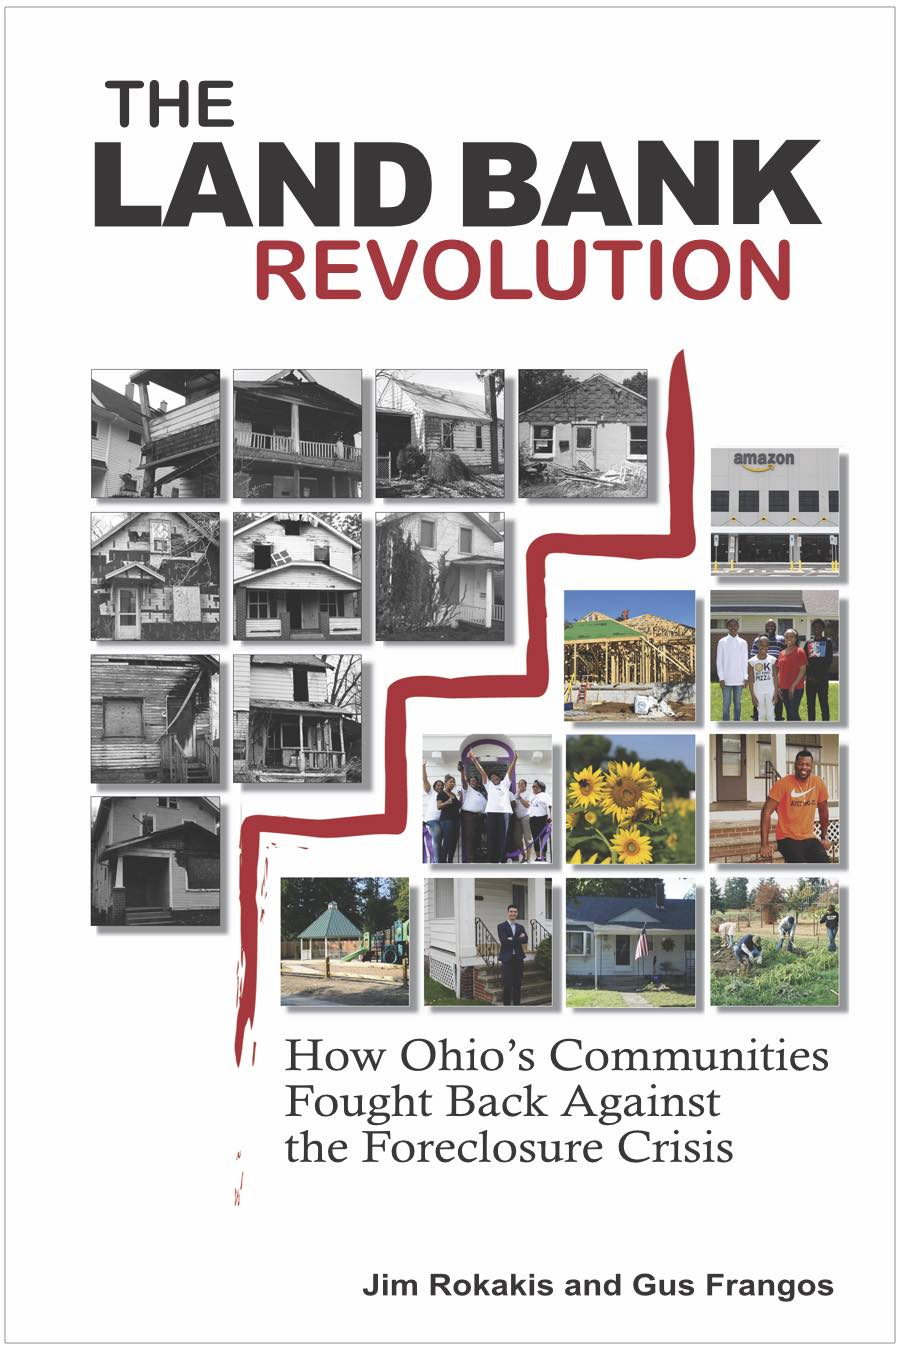 The Land Bank Revolution: How Ohio's Communities Fought Back Against the Foreclosure Crisis